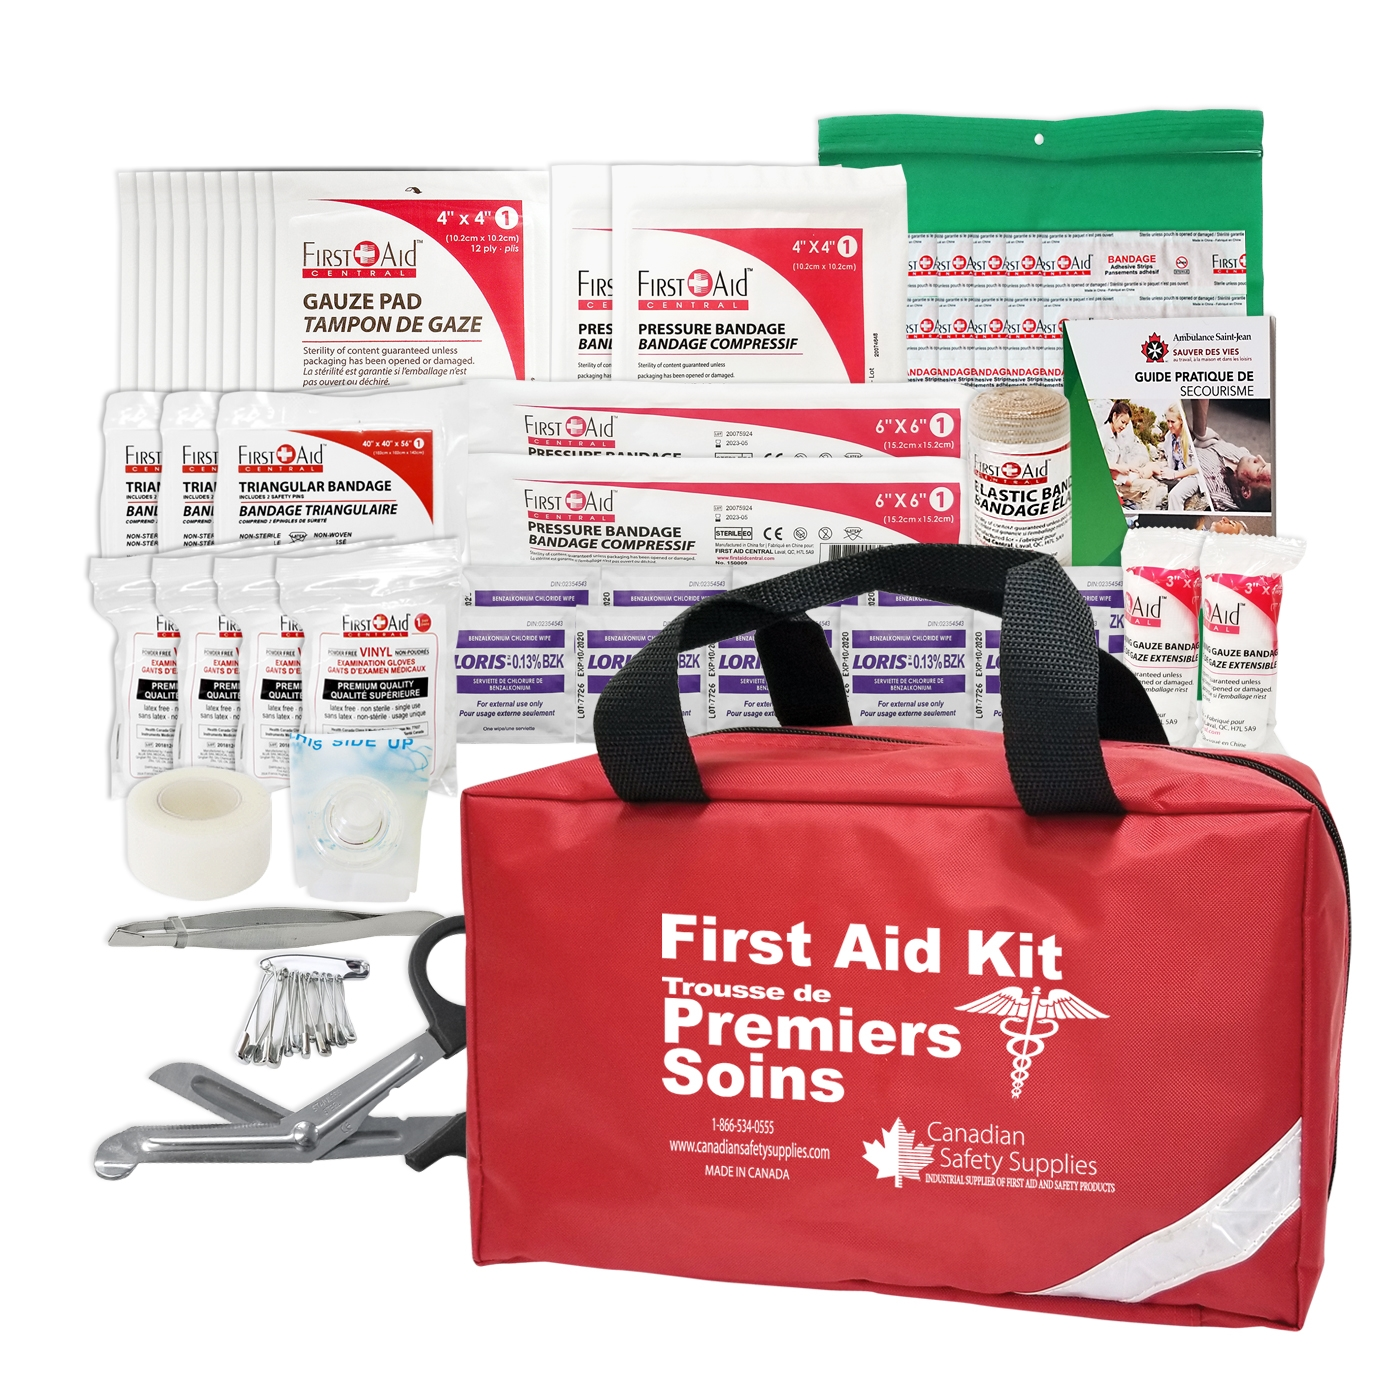 Injuries can happen so make sure to keep a first-aid kit in your car.